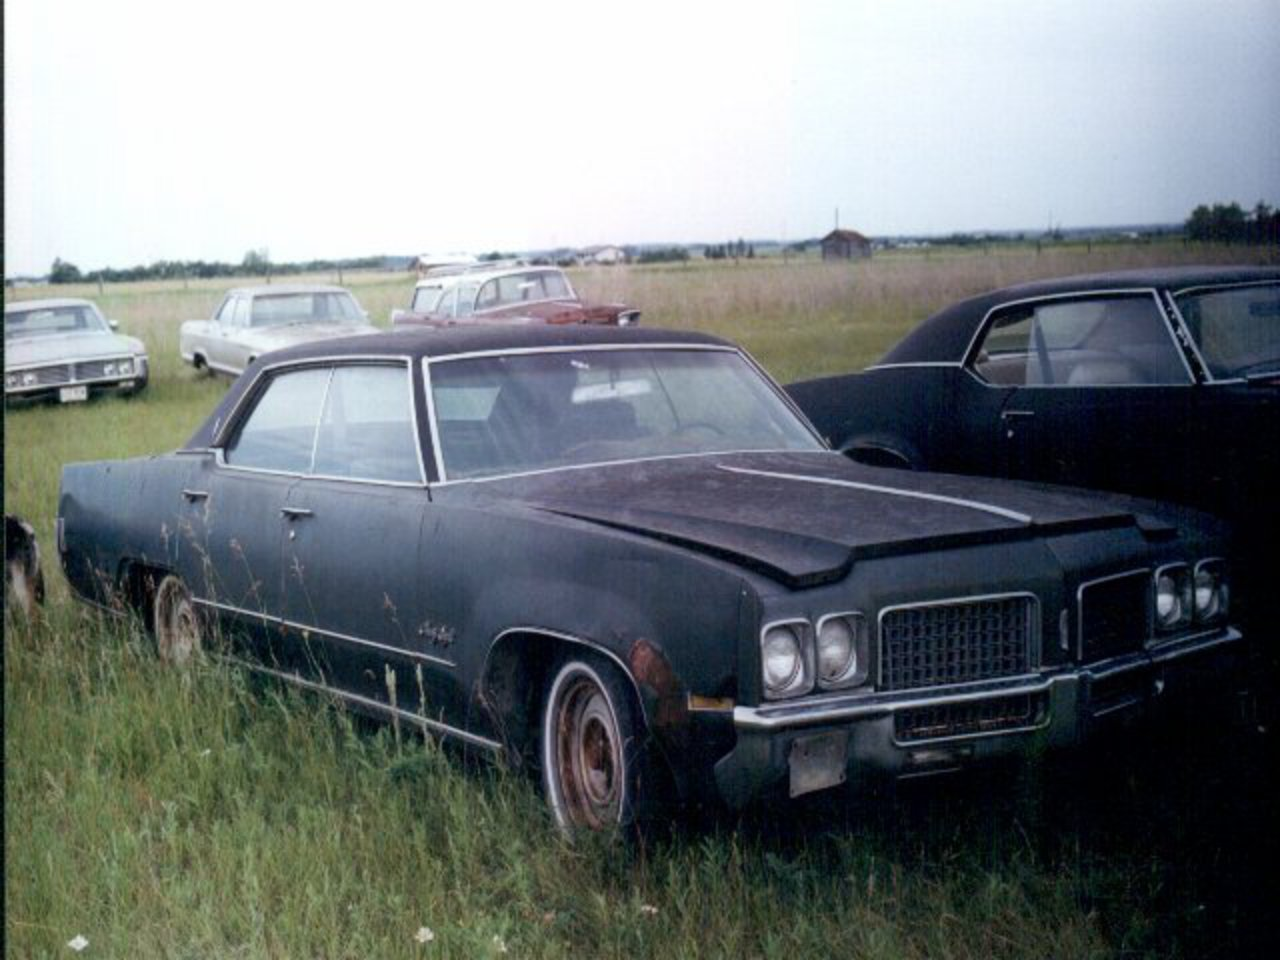 1970 Oldsmobile 98 4DR HT Ref#185 Parts. This car has an AT, PS, PW, P seats